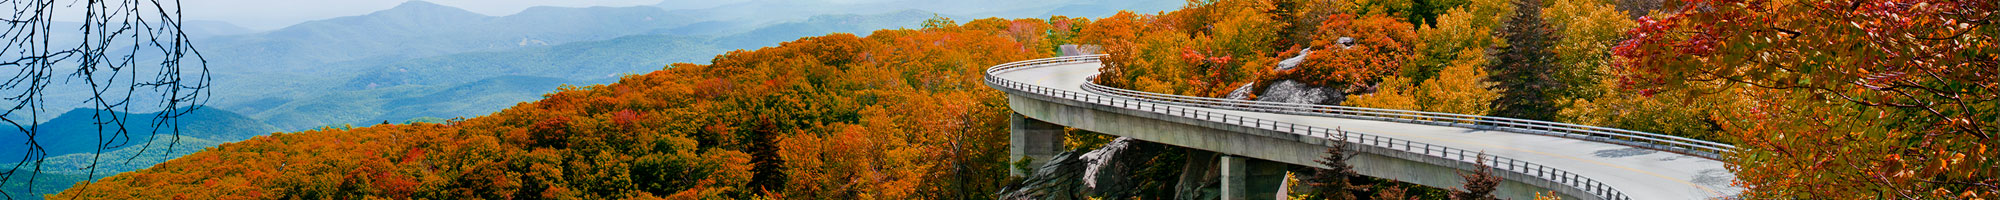 The Blue Ridge Parkway Viaduct near Linvile Falls NC